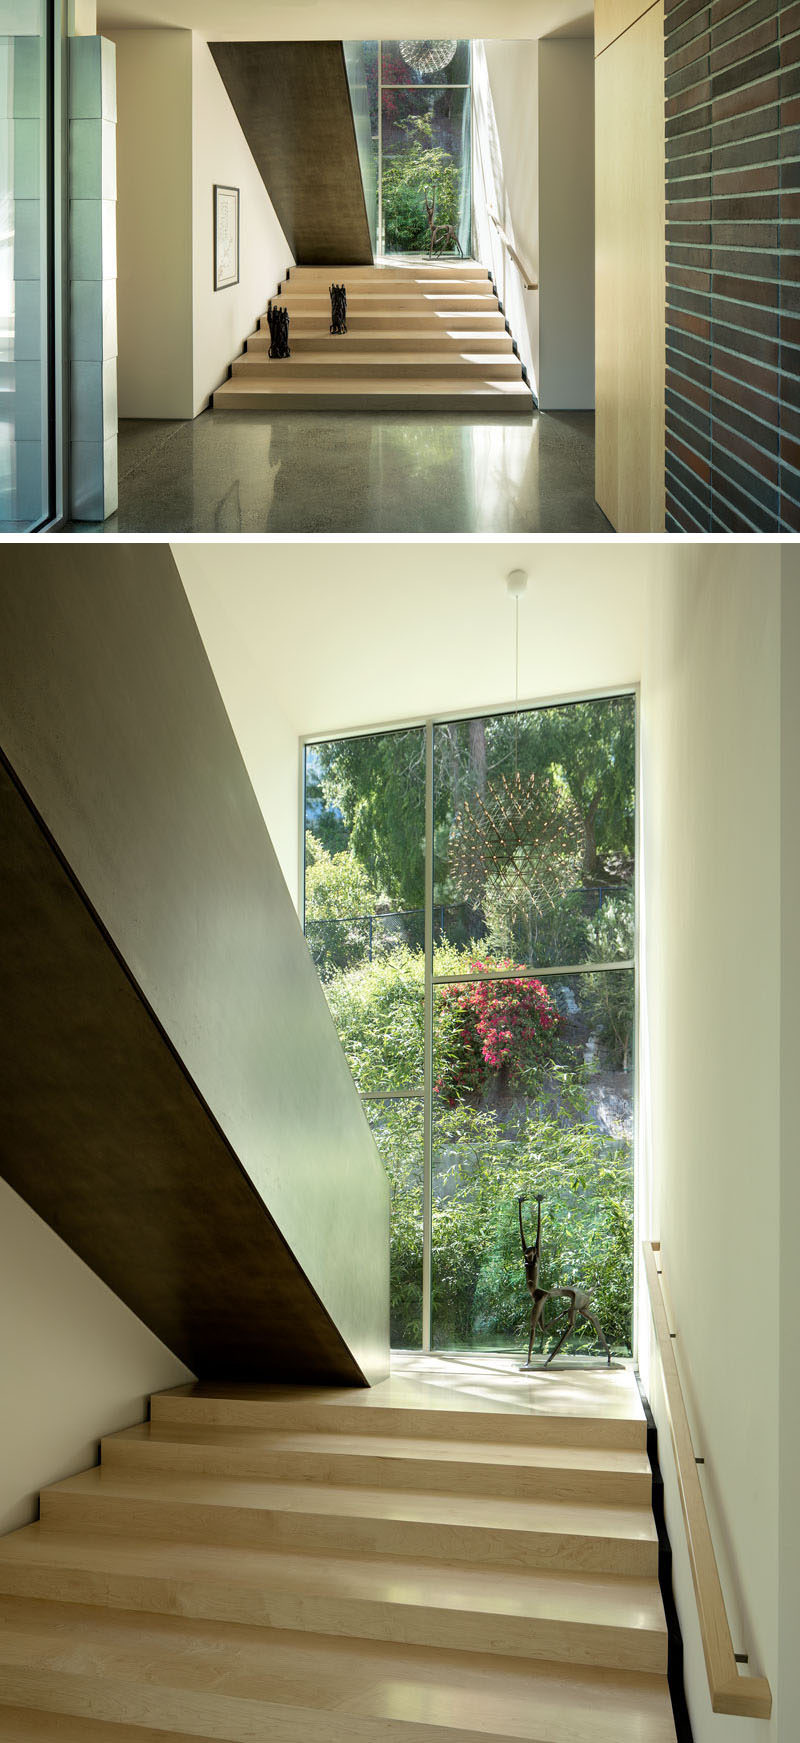 Leading up to the second floor of this modern house is an architectural staircase made from wood and steel that sits at the core of the home. #Staircase #ModernStairs